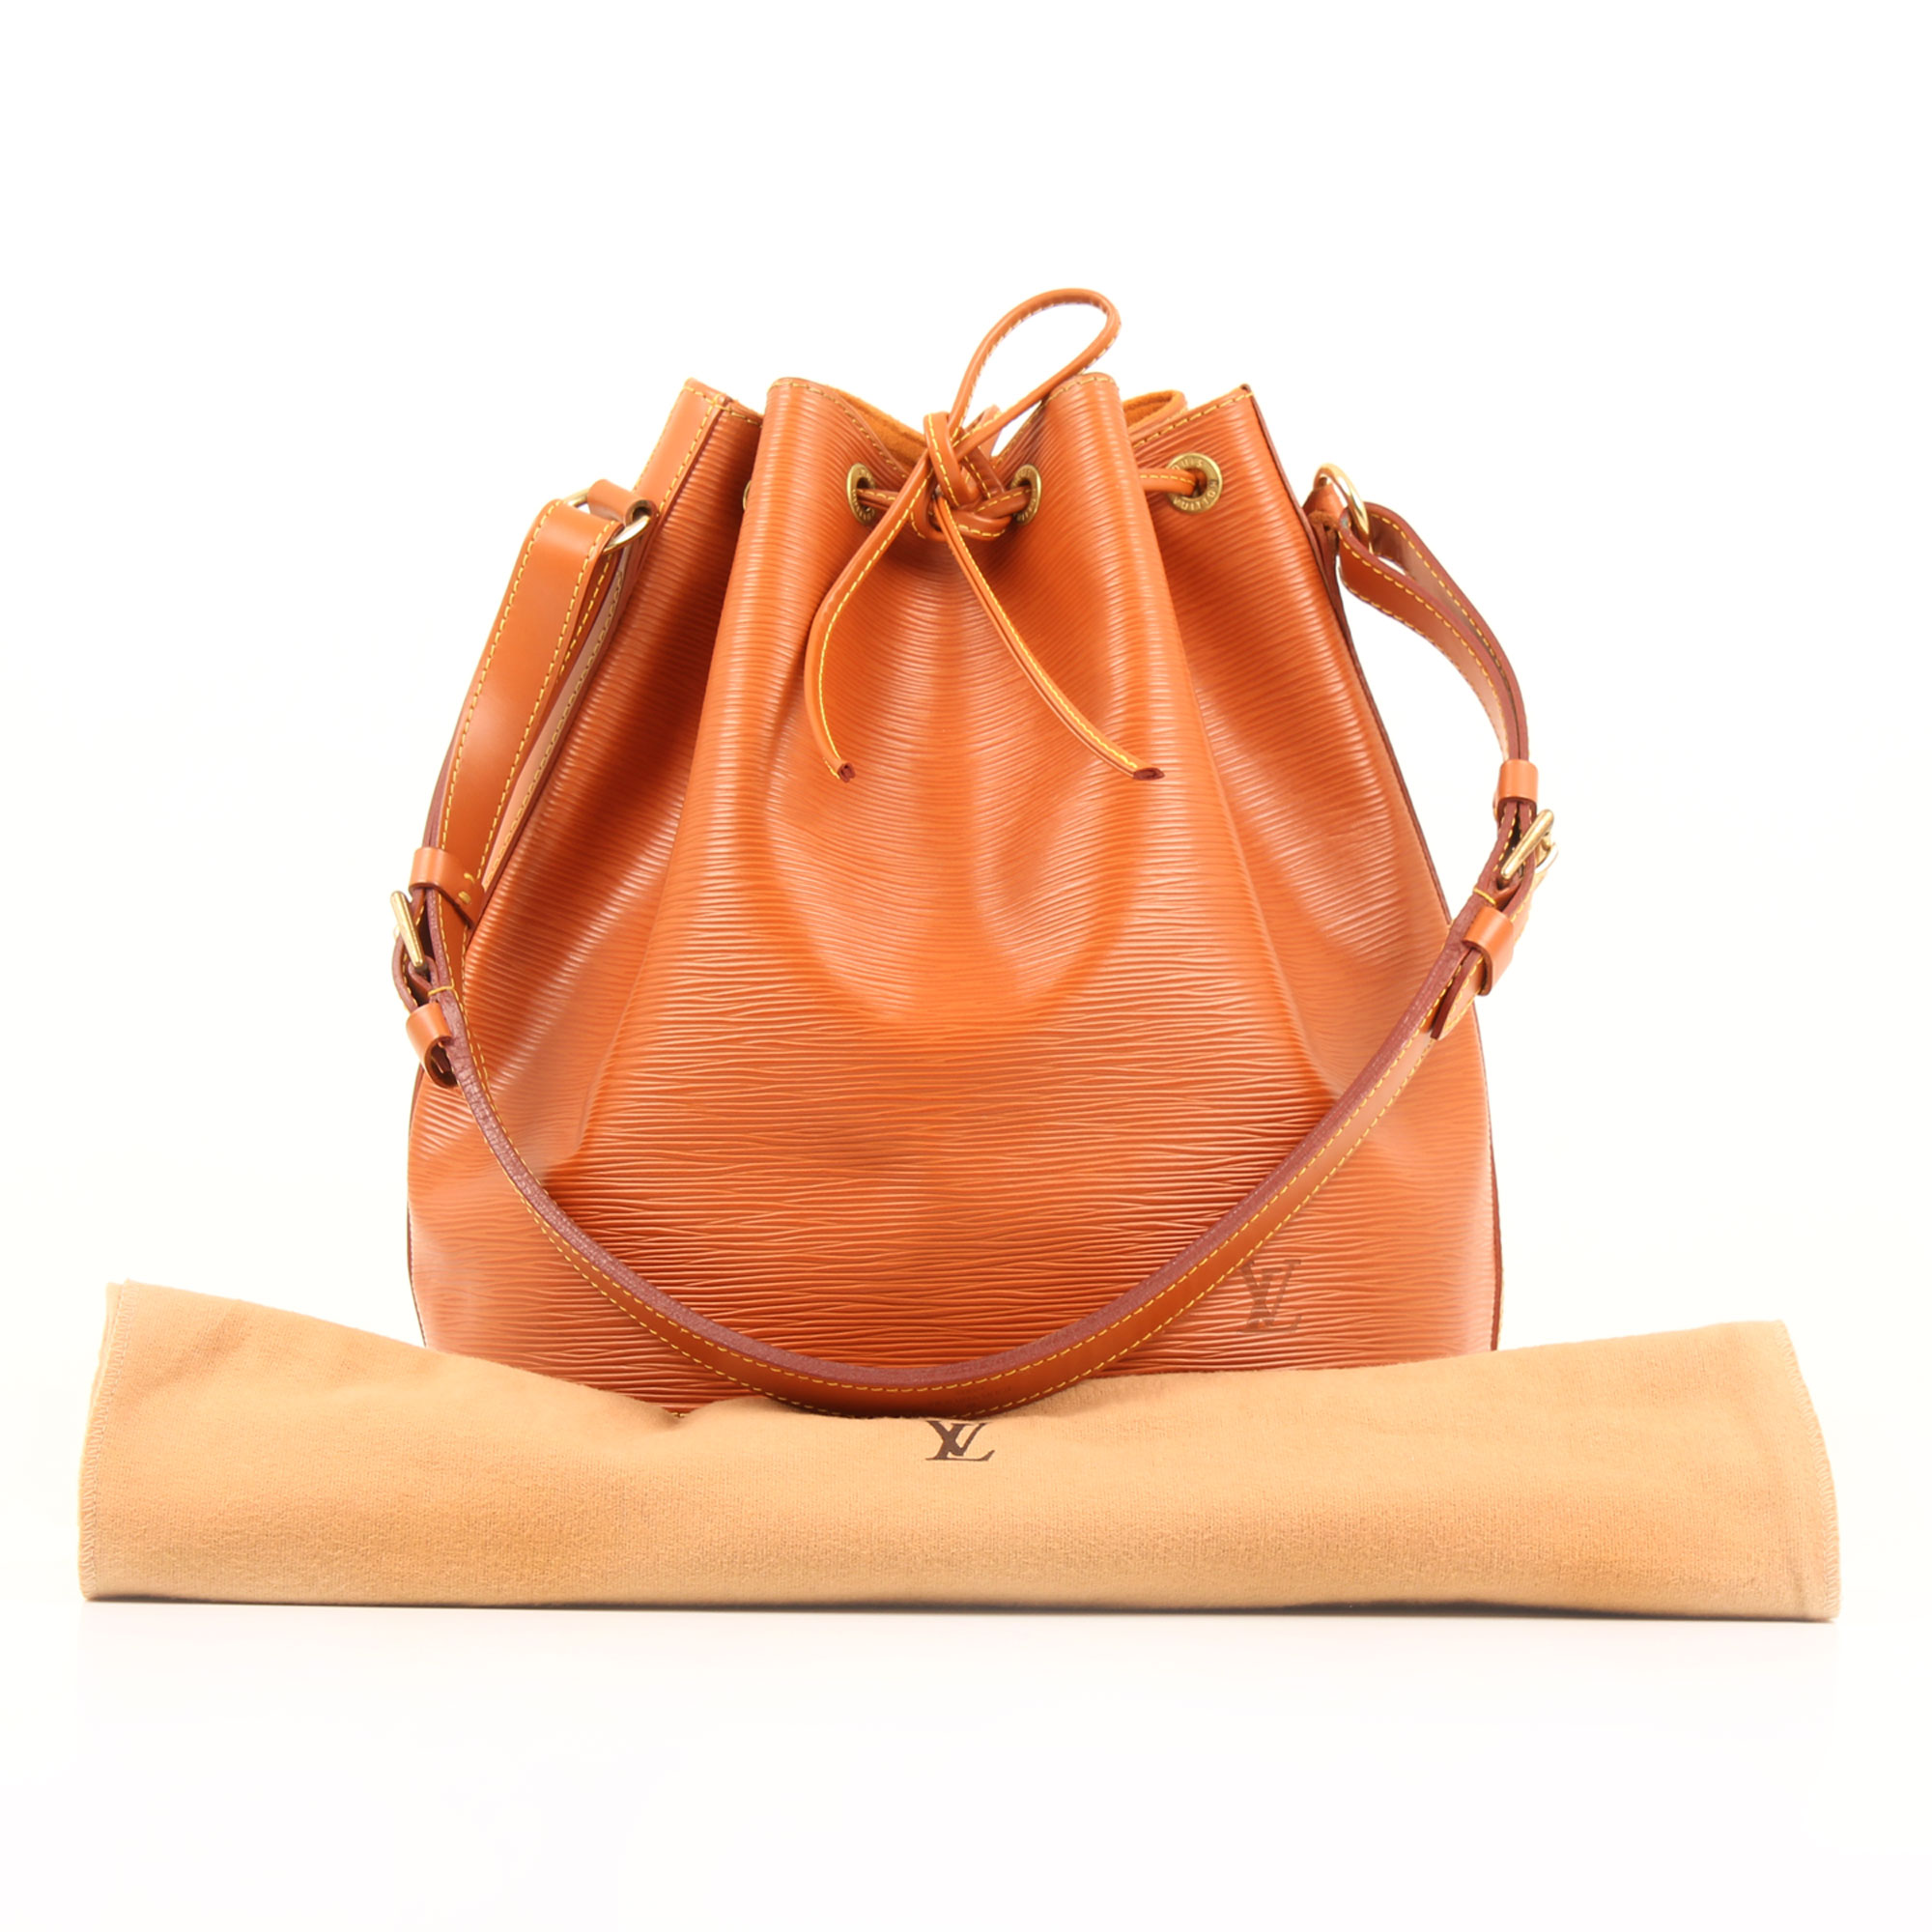 Dustbag image of louis vuitton noe camel epi leather